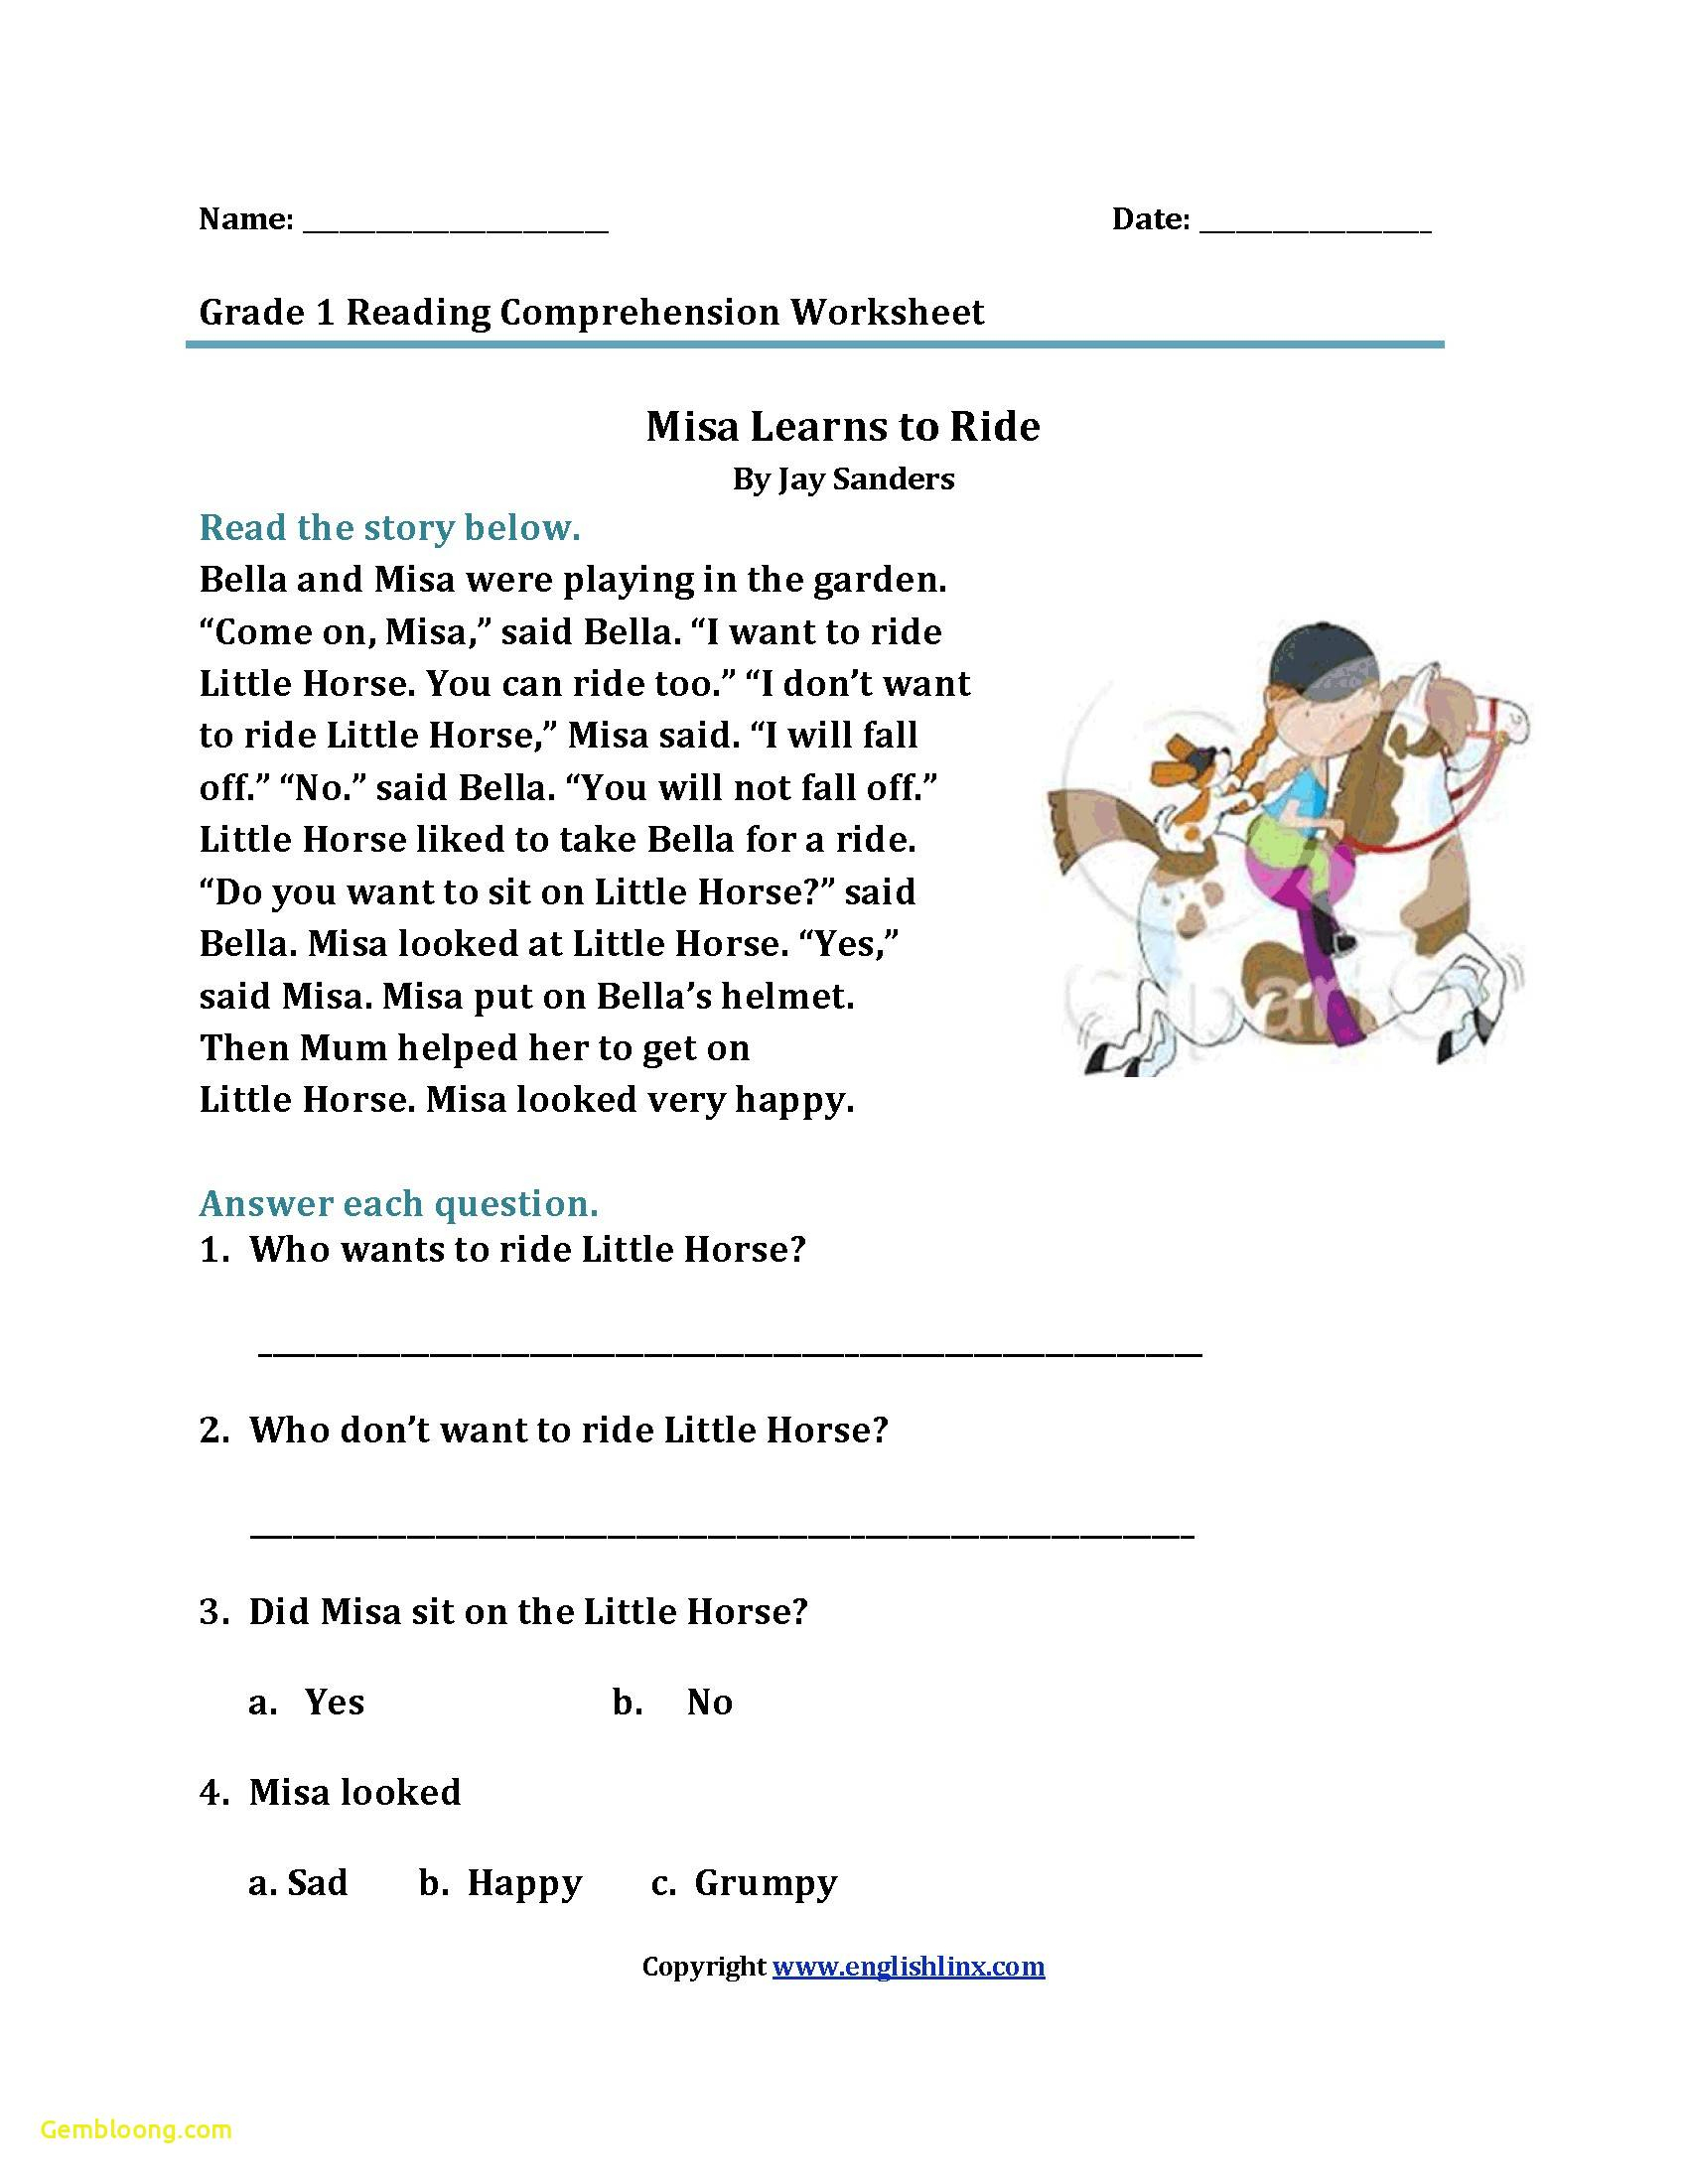 Reading Comprehension Worksheets For 1St Grade - Cramerforcongress | Free Printable Grade 1 Reading Comprehension Worksheets